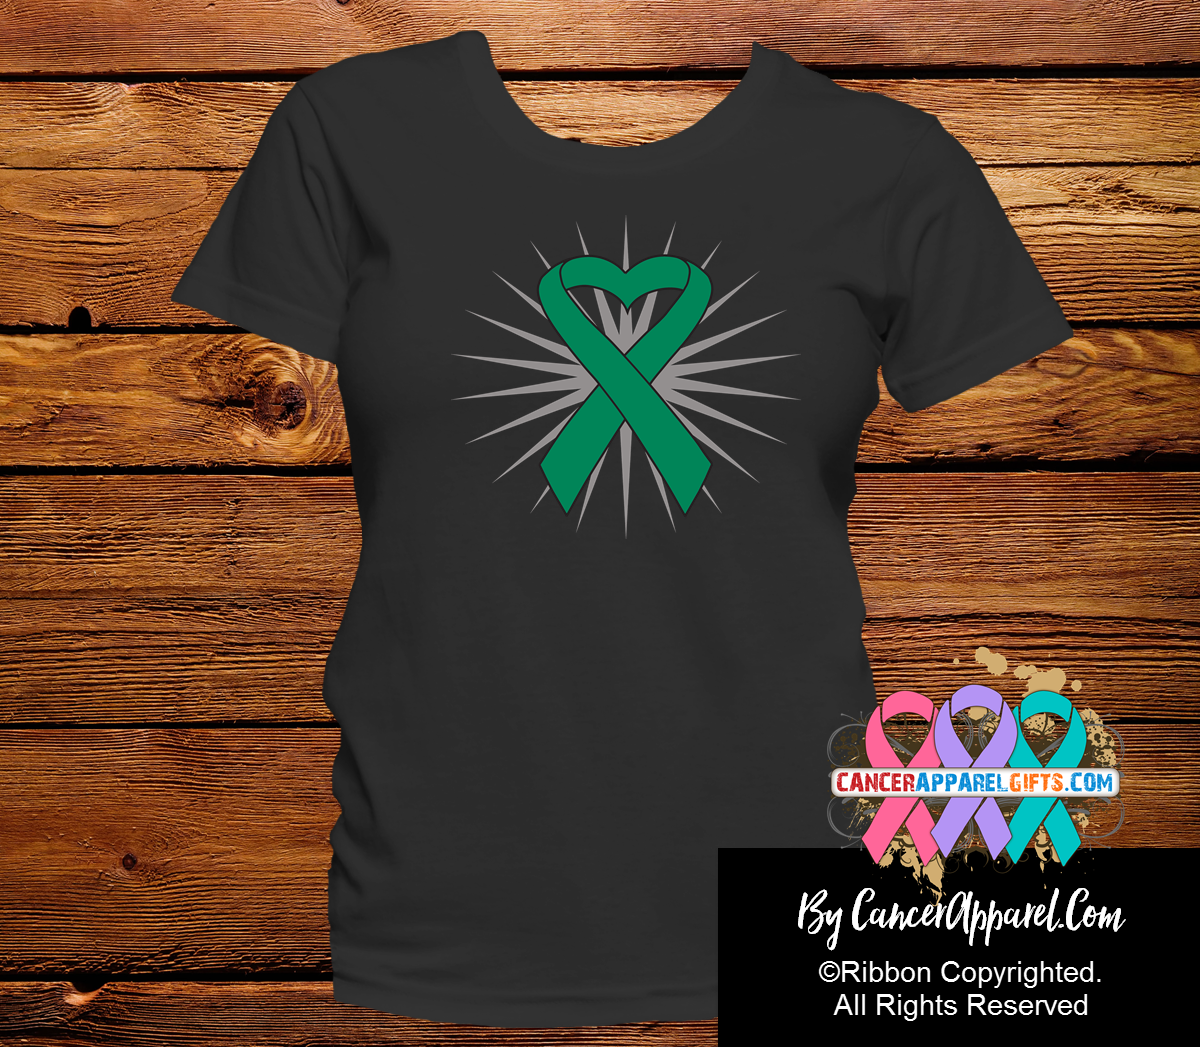 Liver Cancer Awareness Heart Ribbon Shirts - Cancer Apparel and Gifts